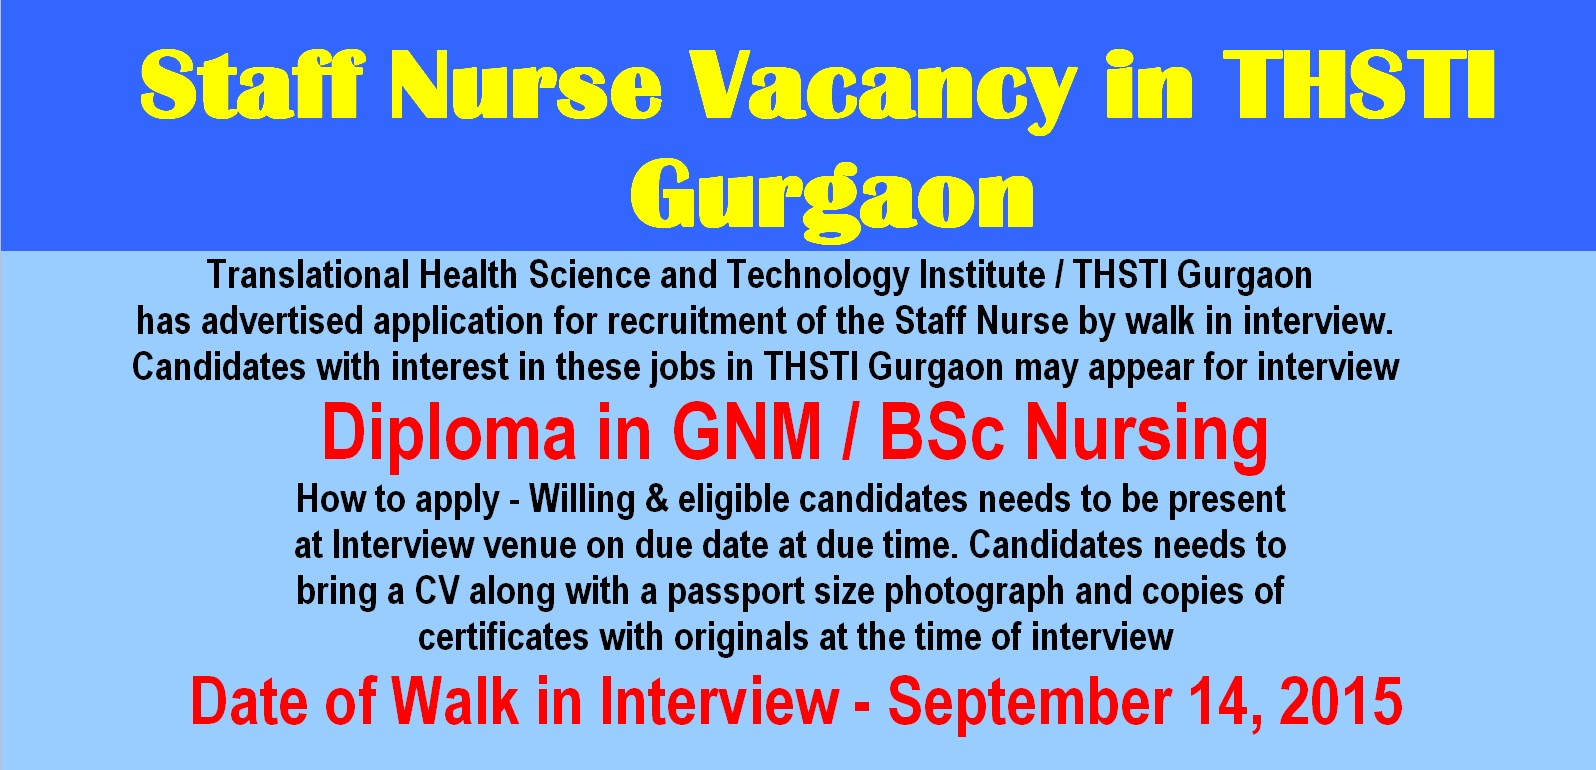 nurses job vacancy staff nurse vacancy in thsti gurgaon  translational health science and technology institute thsti gurgaon has advertised application for recruitment of the staff nurse by walk in interview